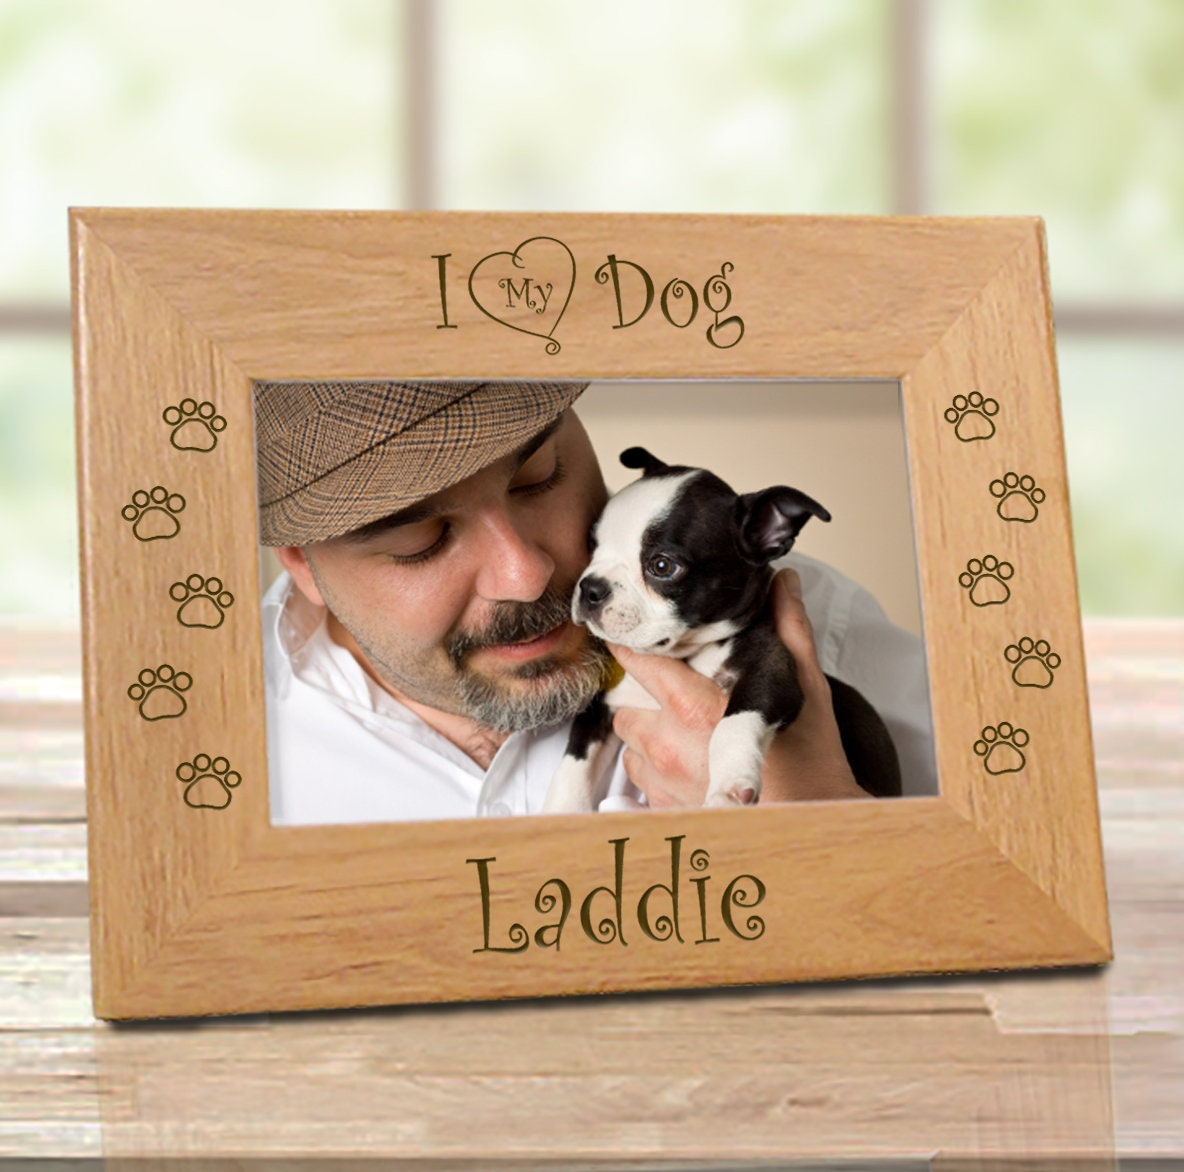 Best Dog Ever Add Pet Name-Personalized Custom Picture Frame Engraved Wood Dog Picture Frame,Dog Memorial Picture Frame,Dog Lover Gift,Dog Birthday,Dog Dad,Dog Mom,Best Puppy Gift 4x6 Horizontal